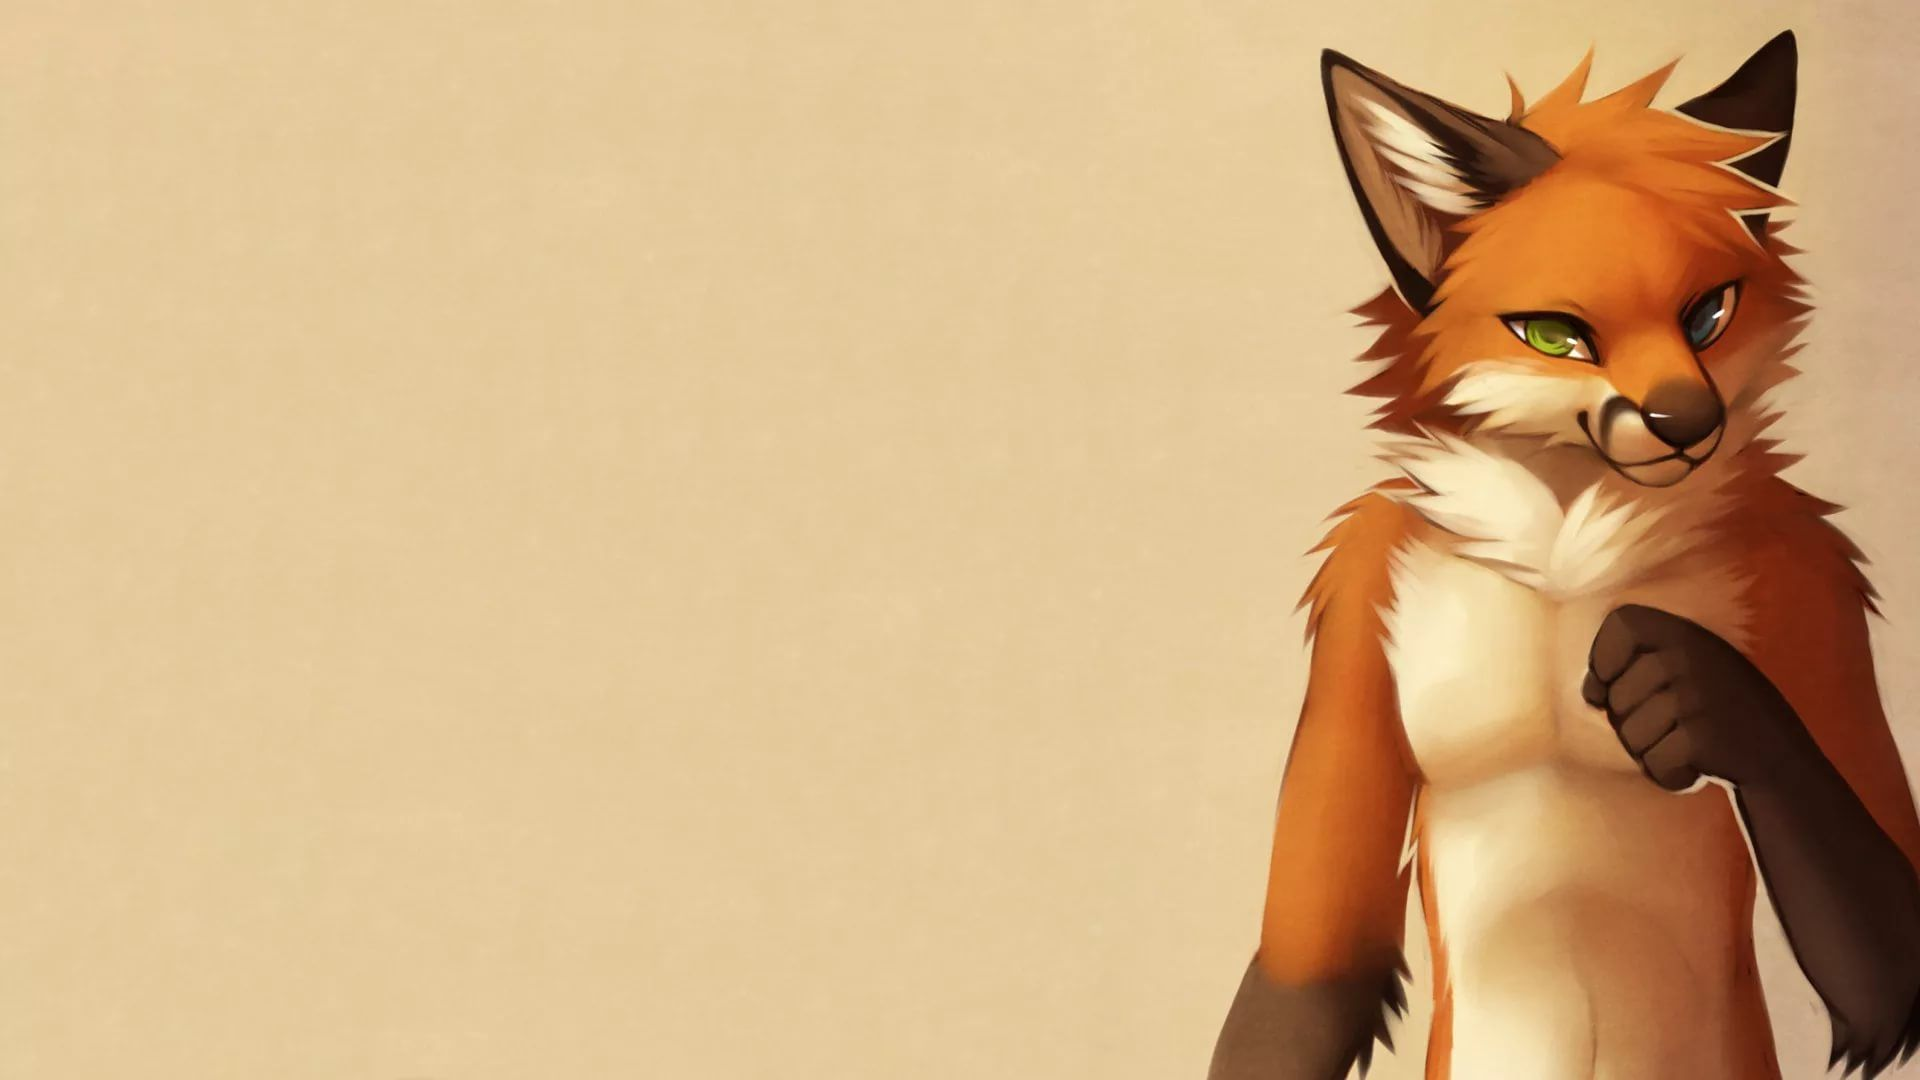 Furry Background High Quality